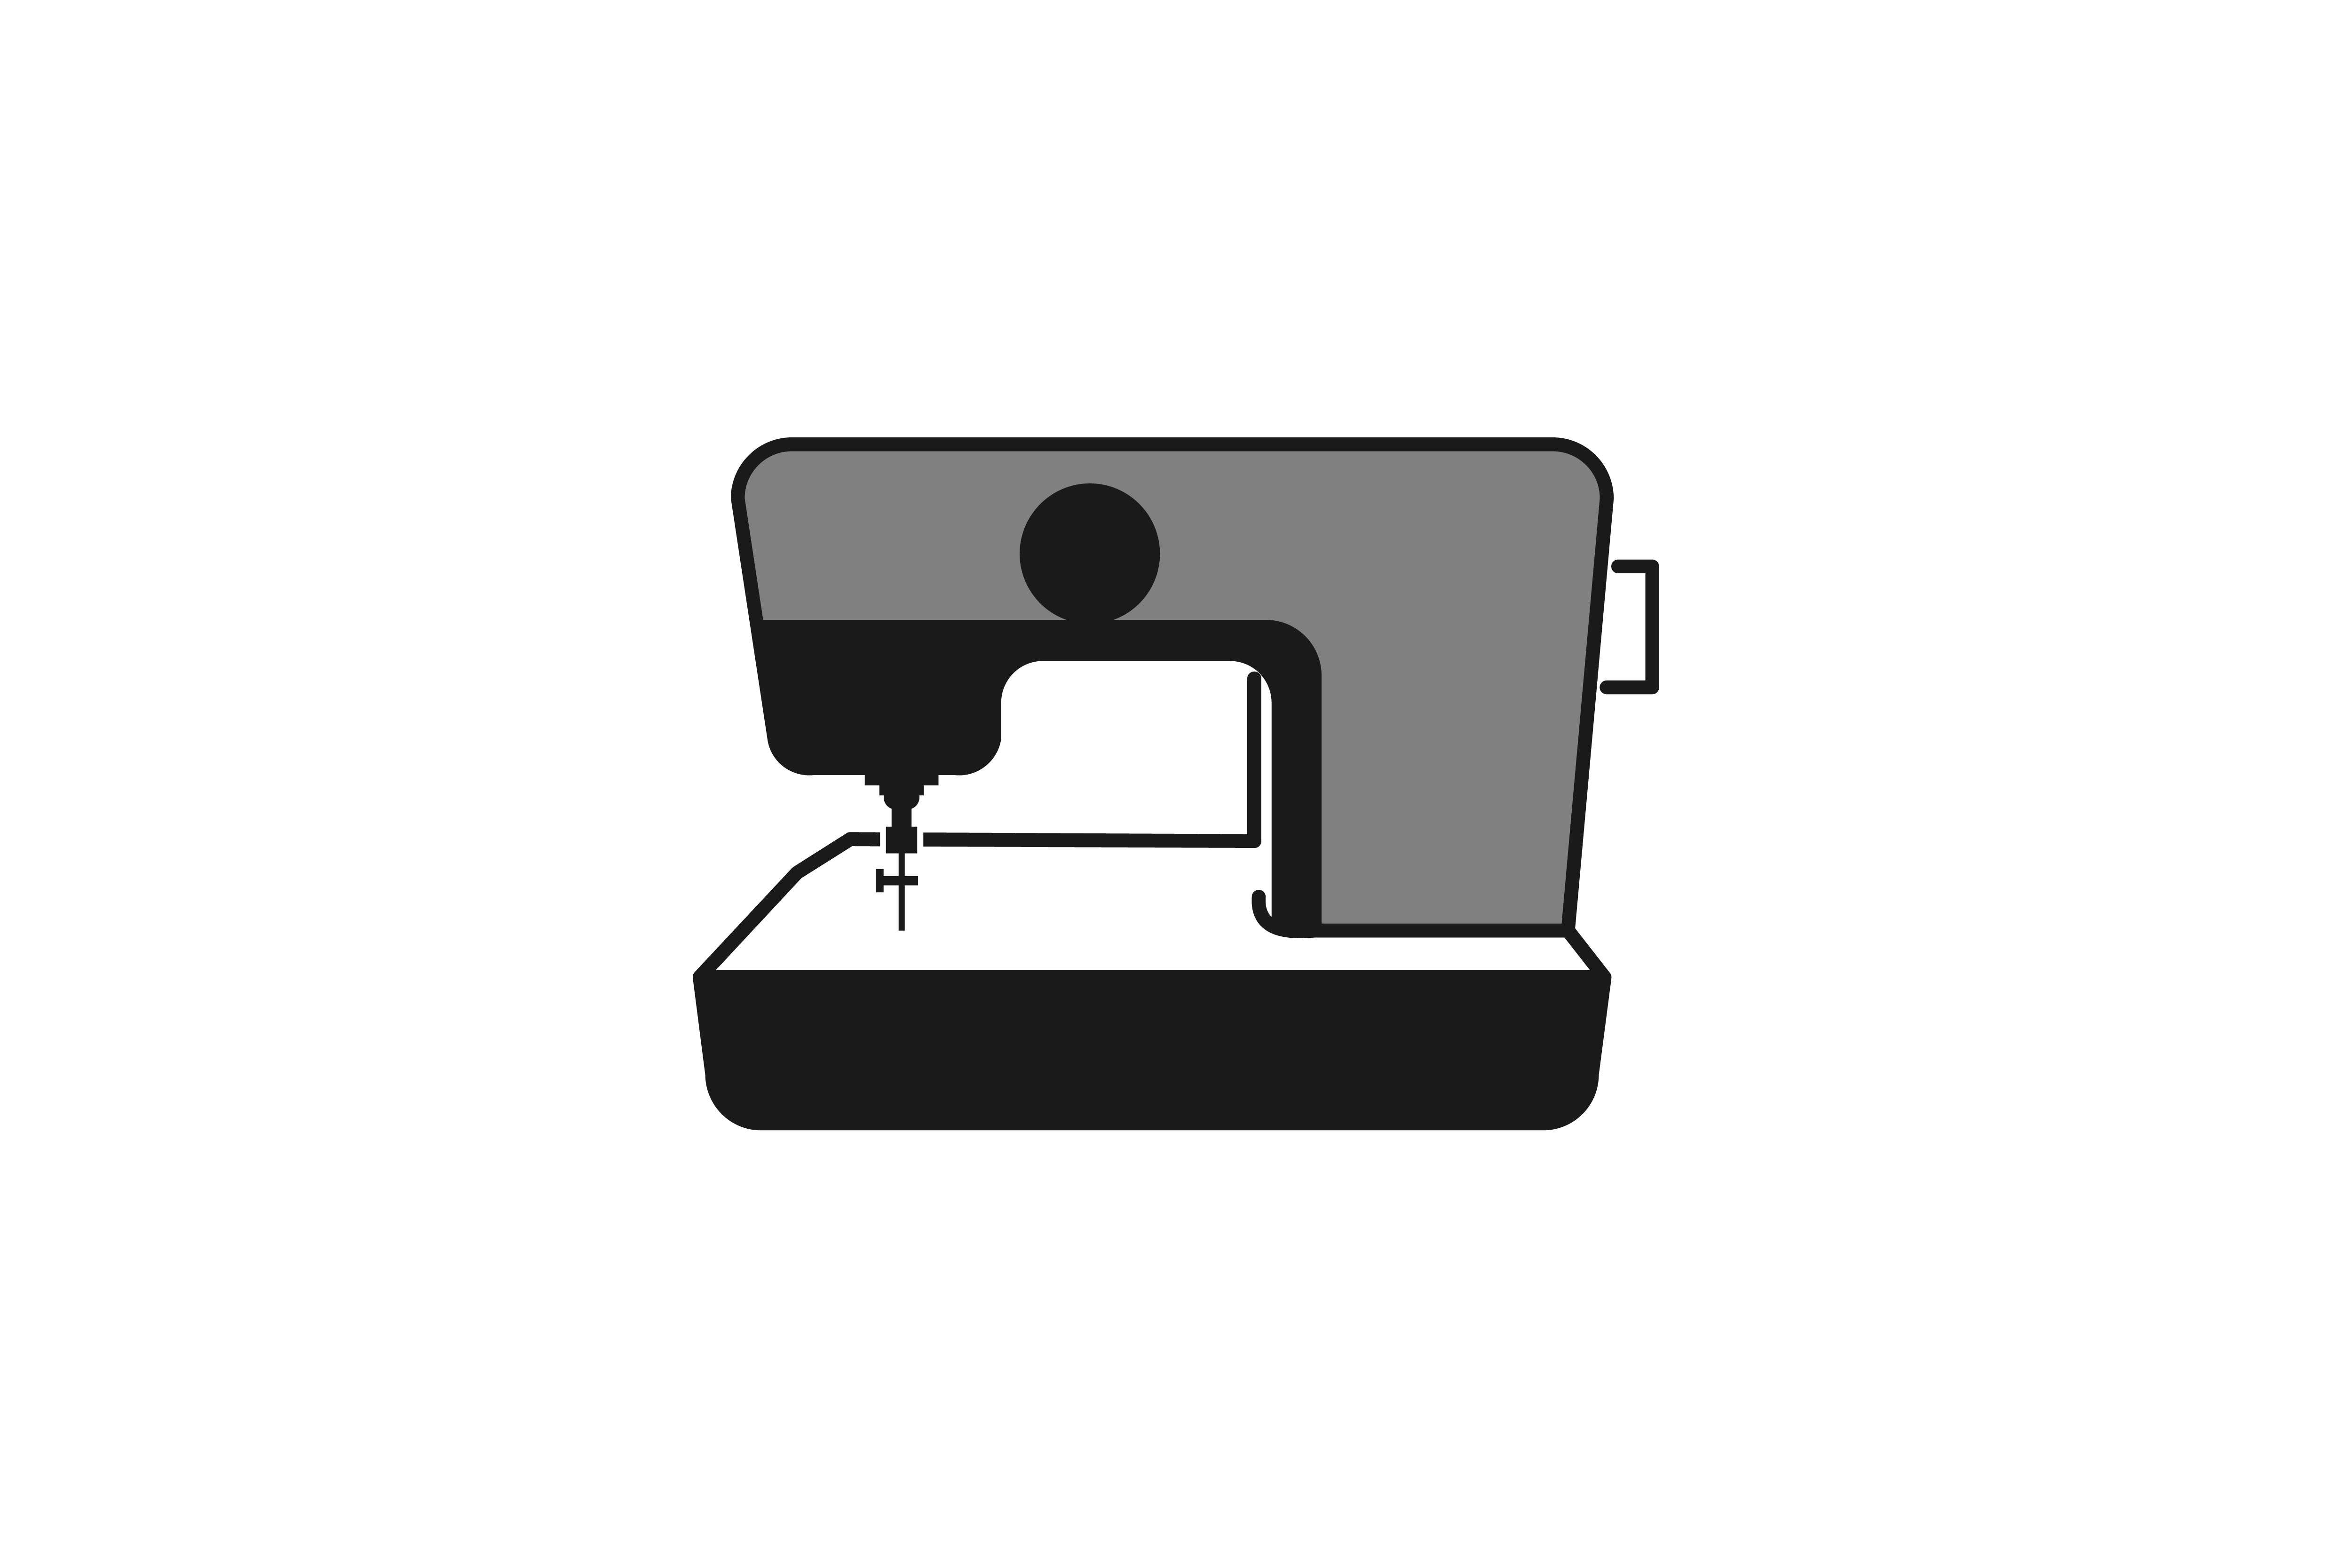 Download Free Sewing Machine Logo Graphic By Yahyaanasatokillah Creative Fabrica for Cricut Explore, Silhouette and other cutting machines.